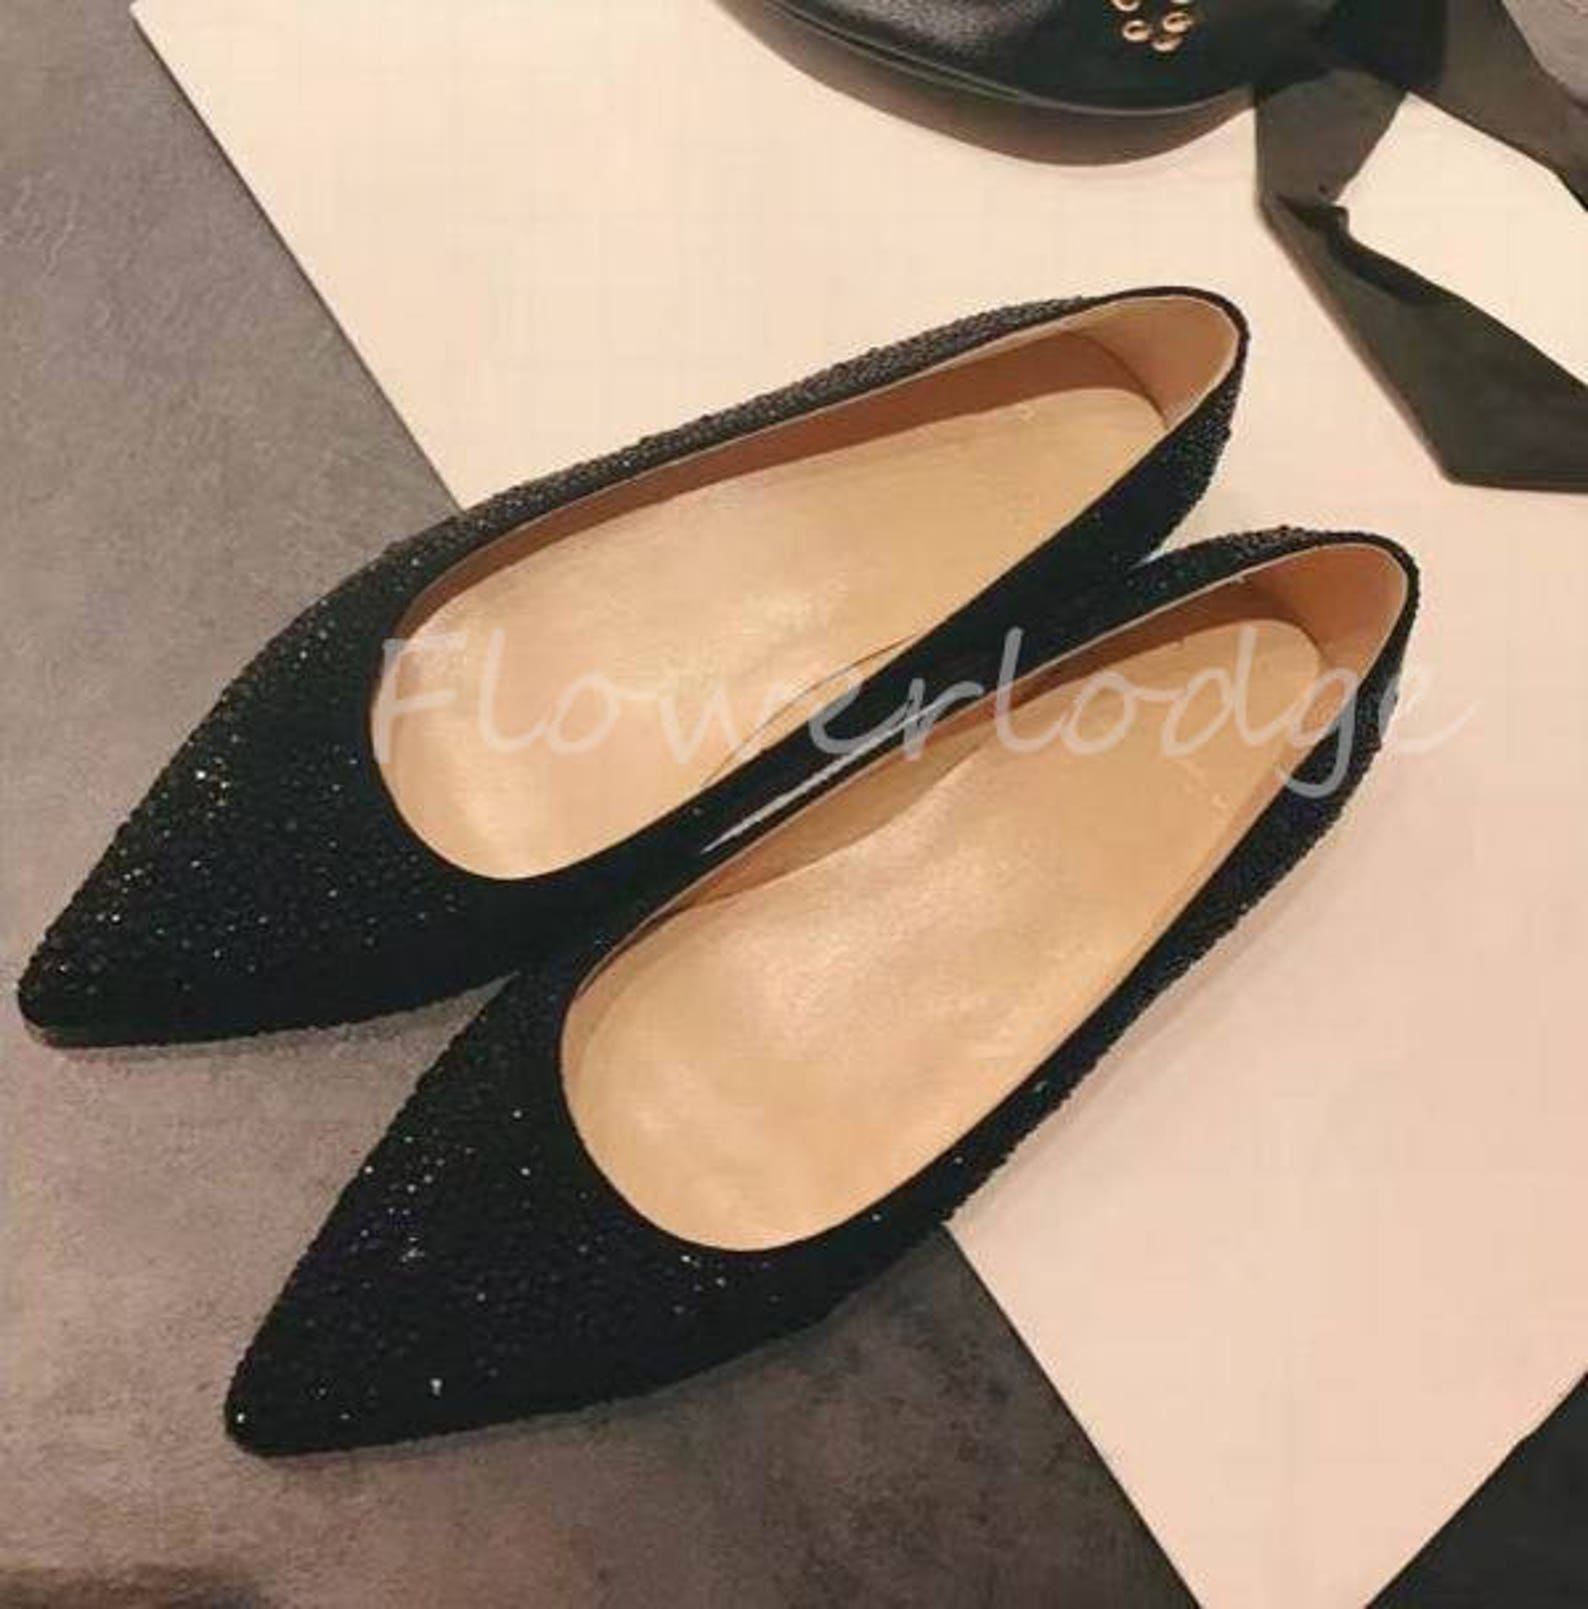 black glitter crystal pointed toe ballet flats rhinestone women shoes bling sparkly customize other